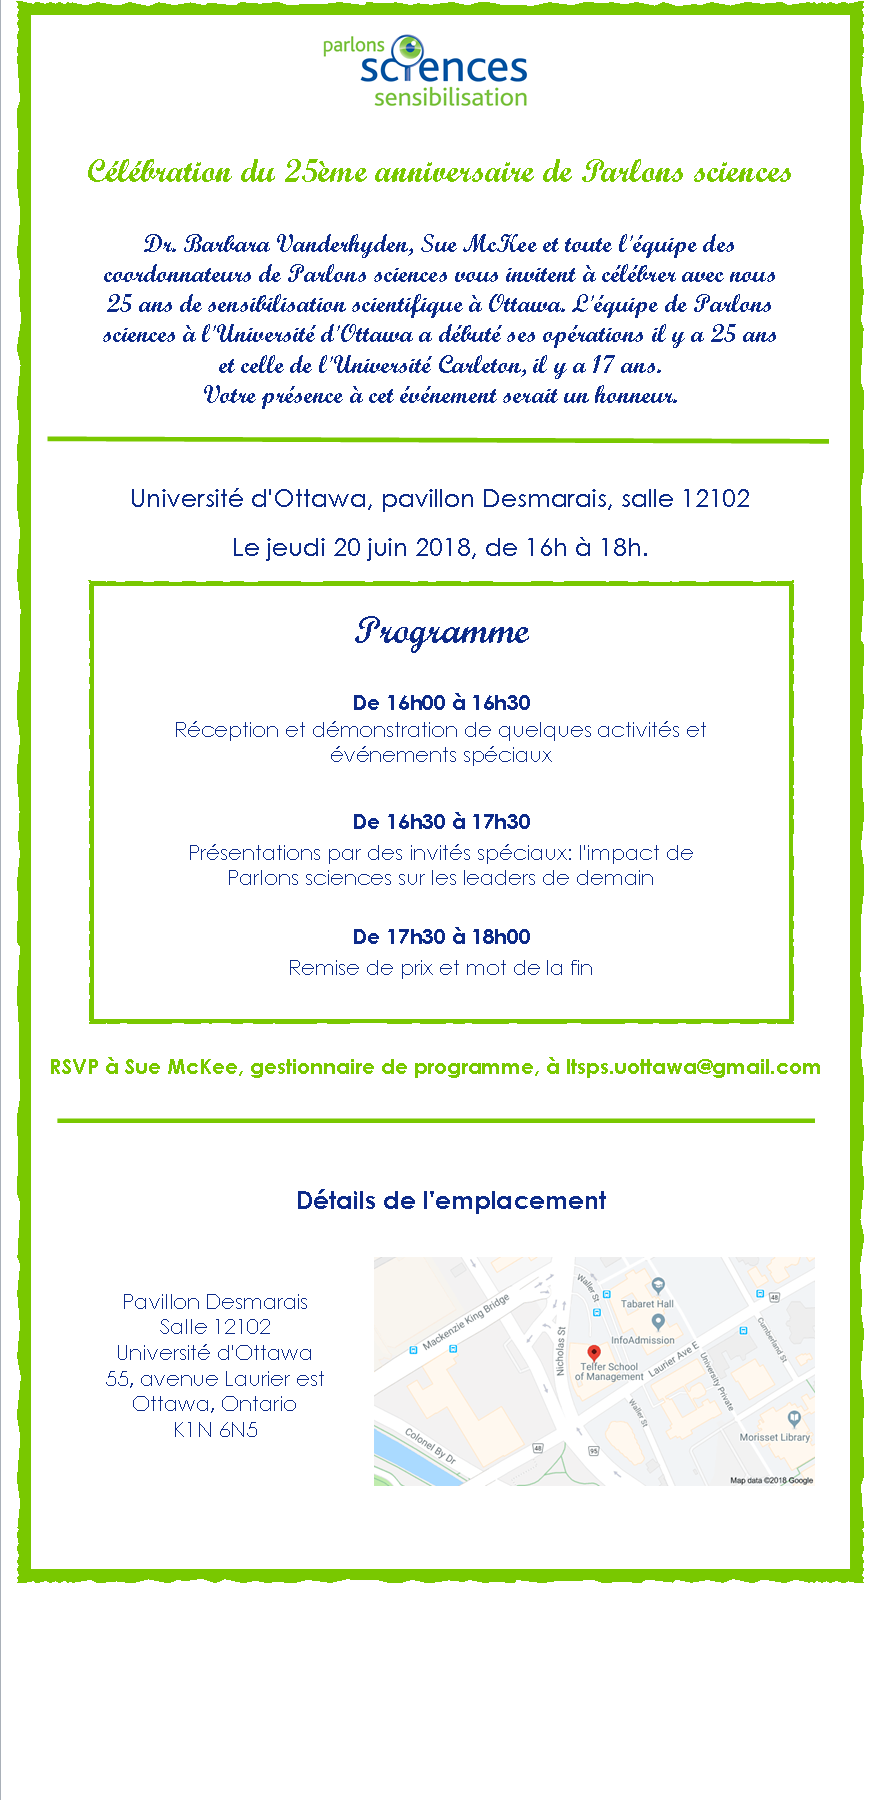 Parlons science invitation